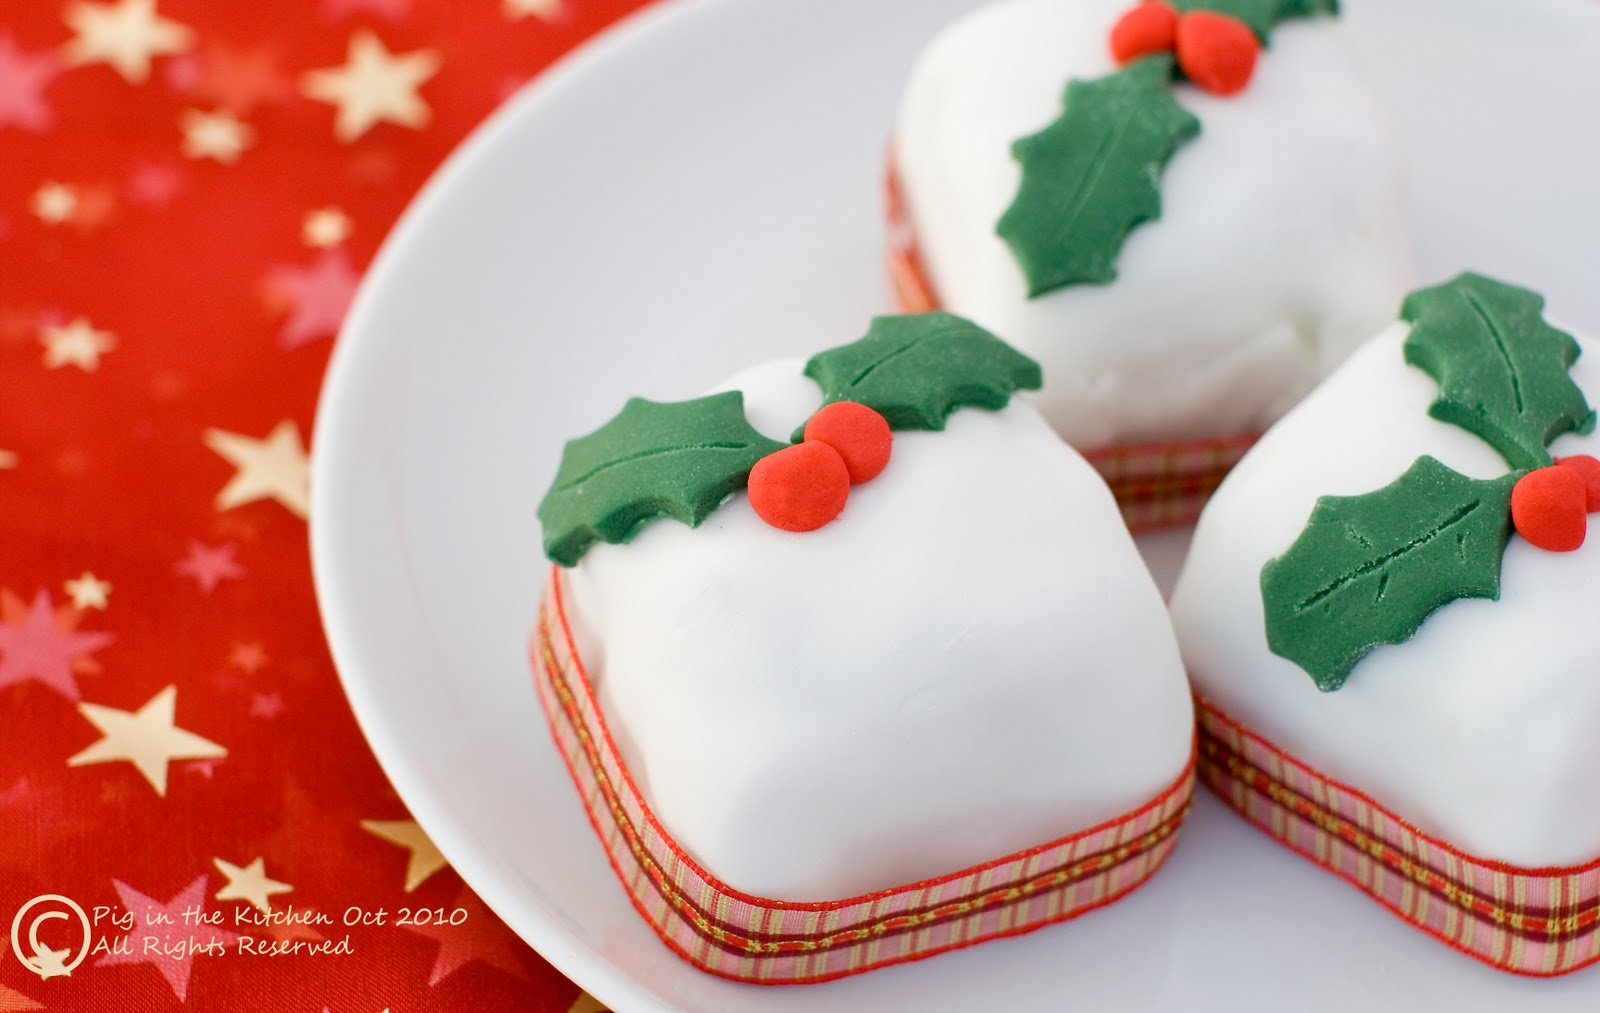 Cooking Christmas Cakes